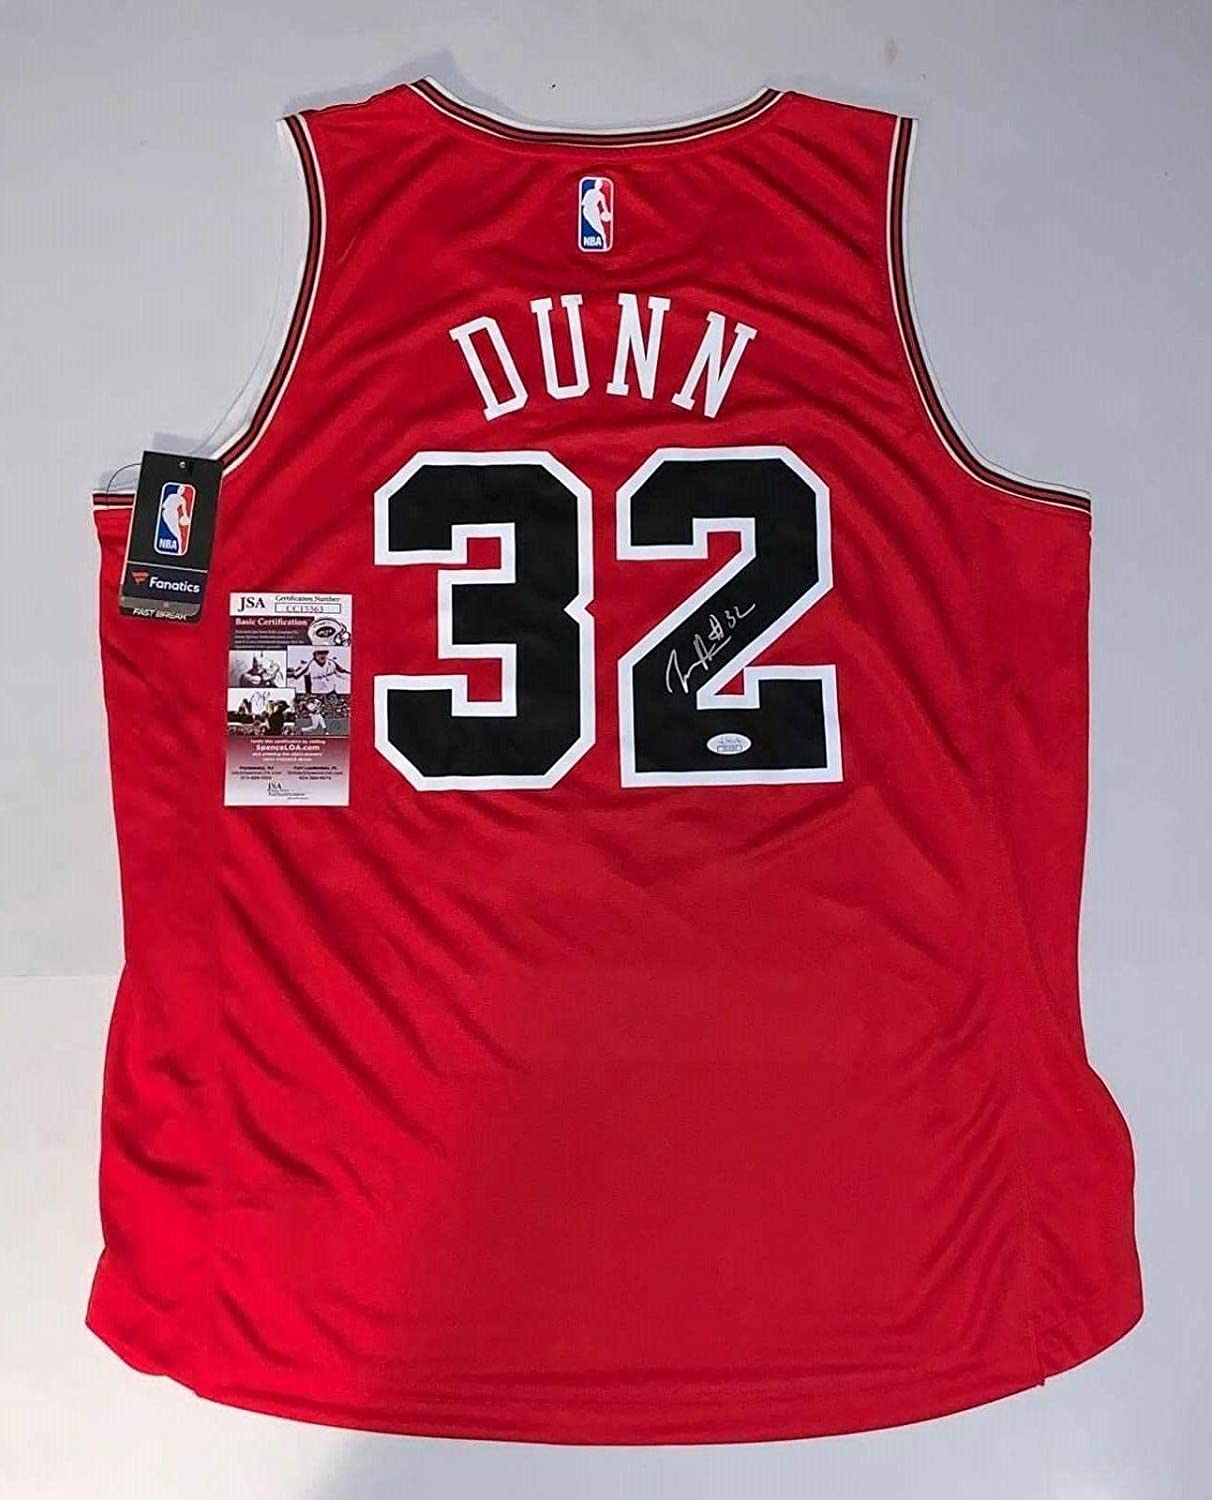 reputable site 29bd9 a54b9 Autographed Kris Dunn Jersey - Red Fanatics Branded Fast ...